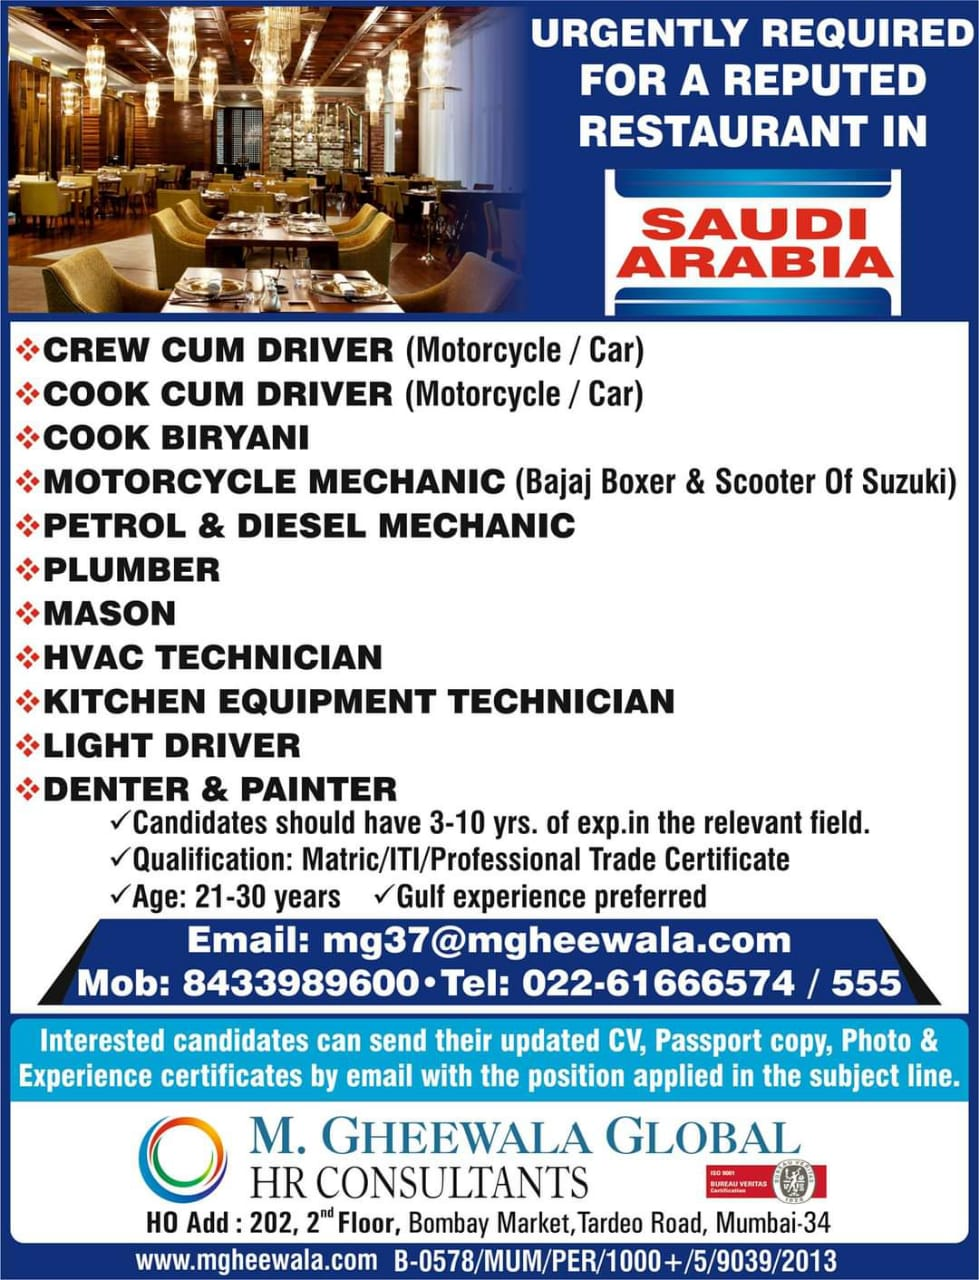 URGENTLY REQUIRED FOR A REPUTED RESTAURANT-SAUDI ARABIA